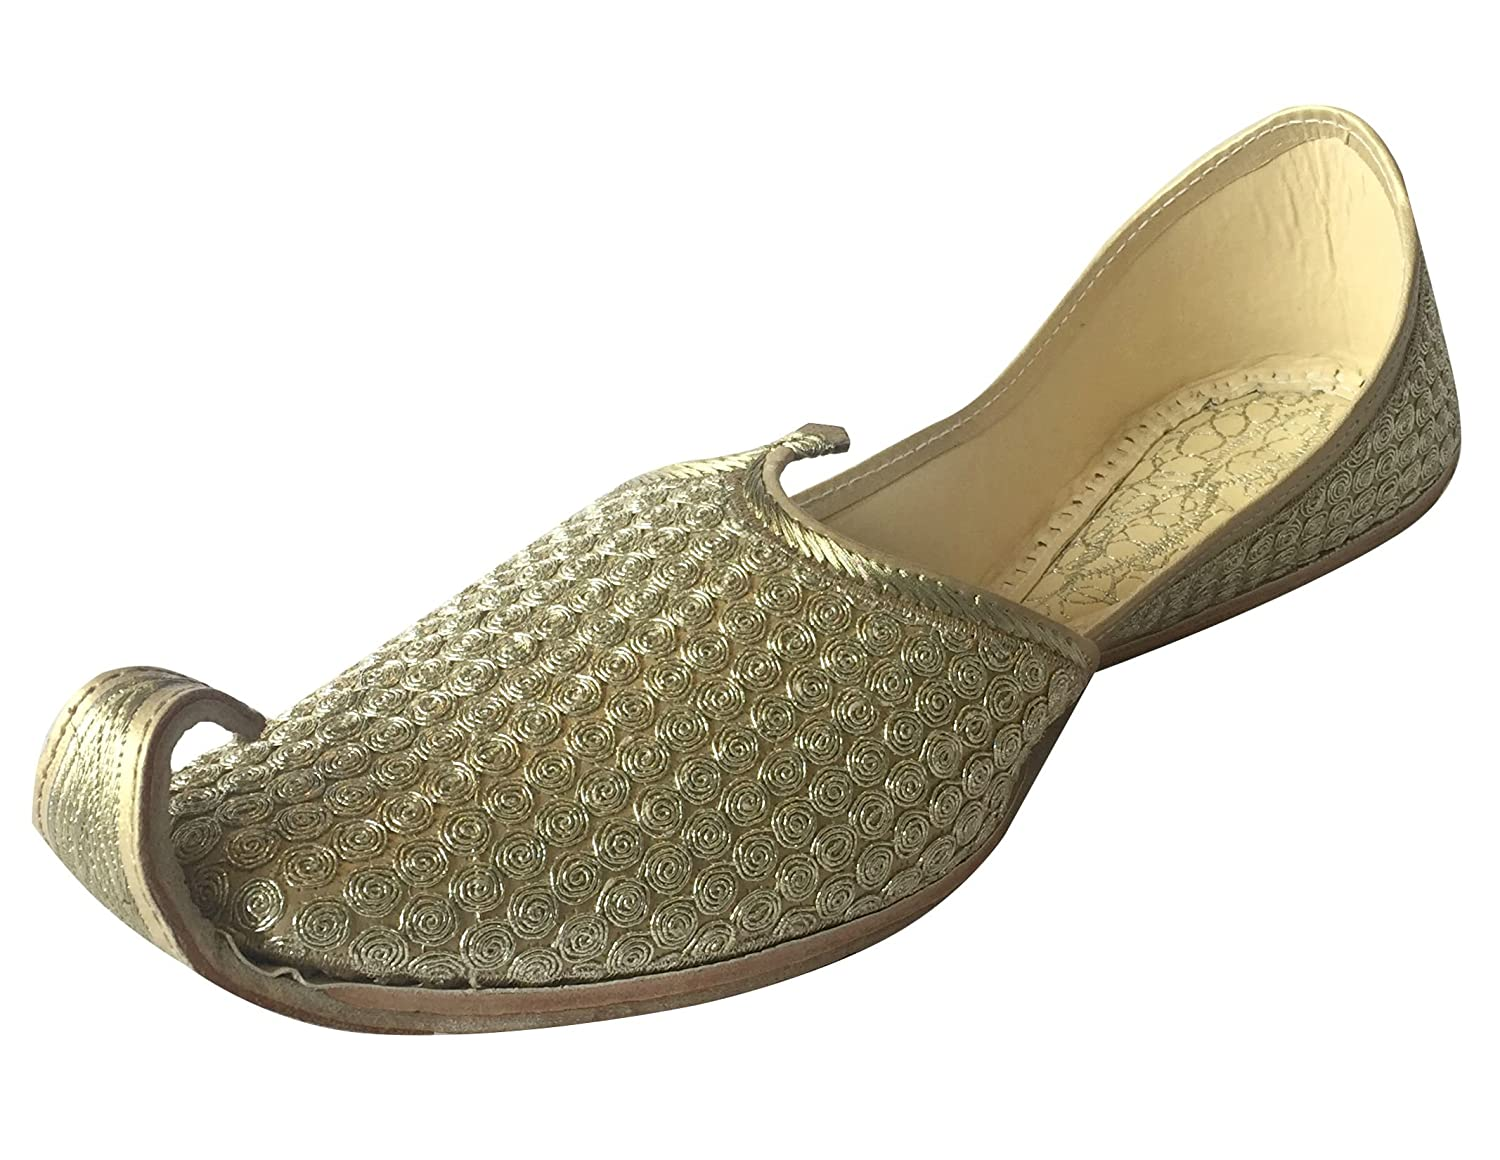 d0ca17d2939 Step n Style Mens Punjabi Jutti Sherwani Shoes Golden Khussa Shoes Ethnic  Footwear  Buy Online at Low Prices in India - Amazon.in